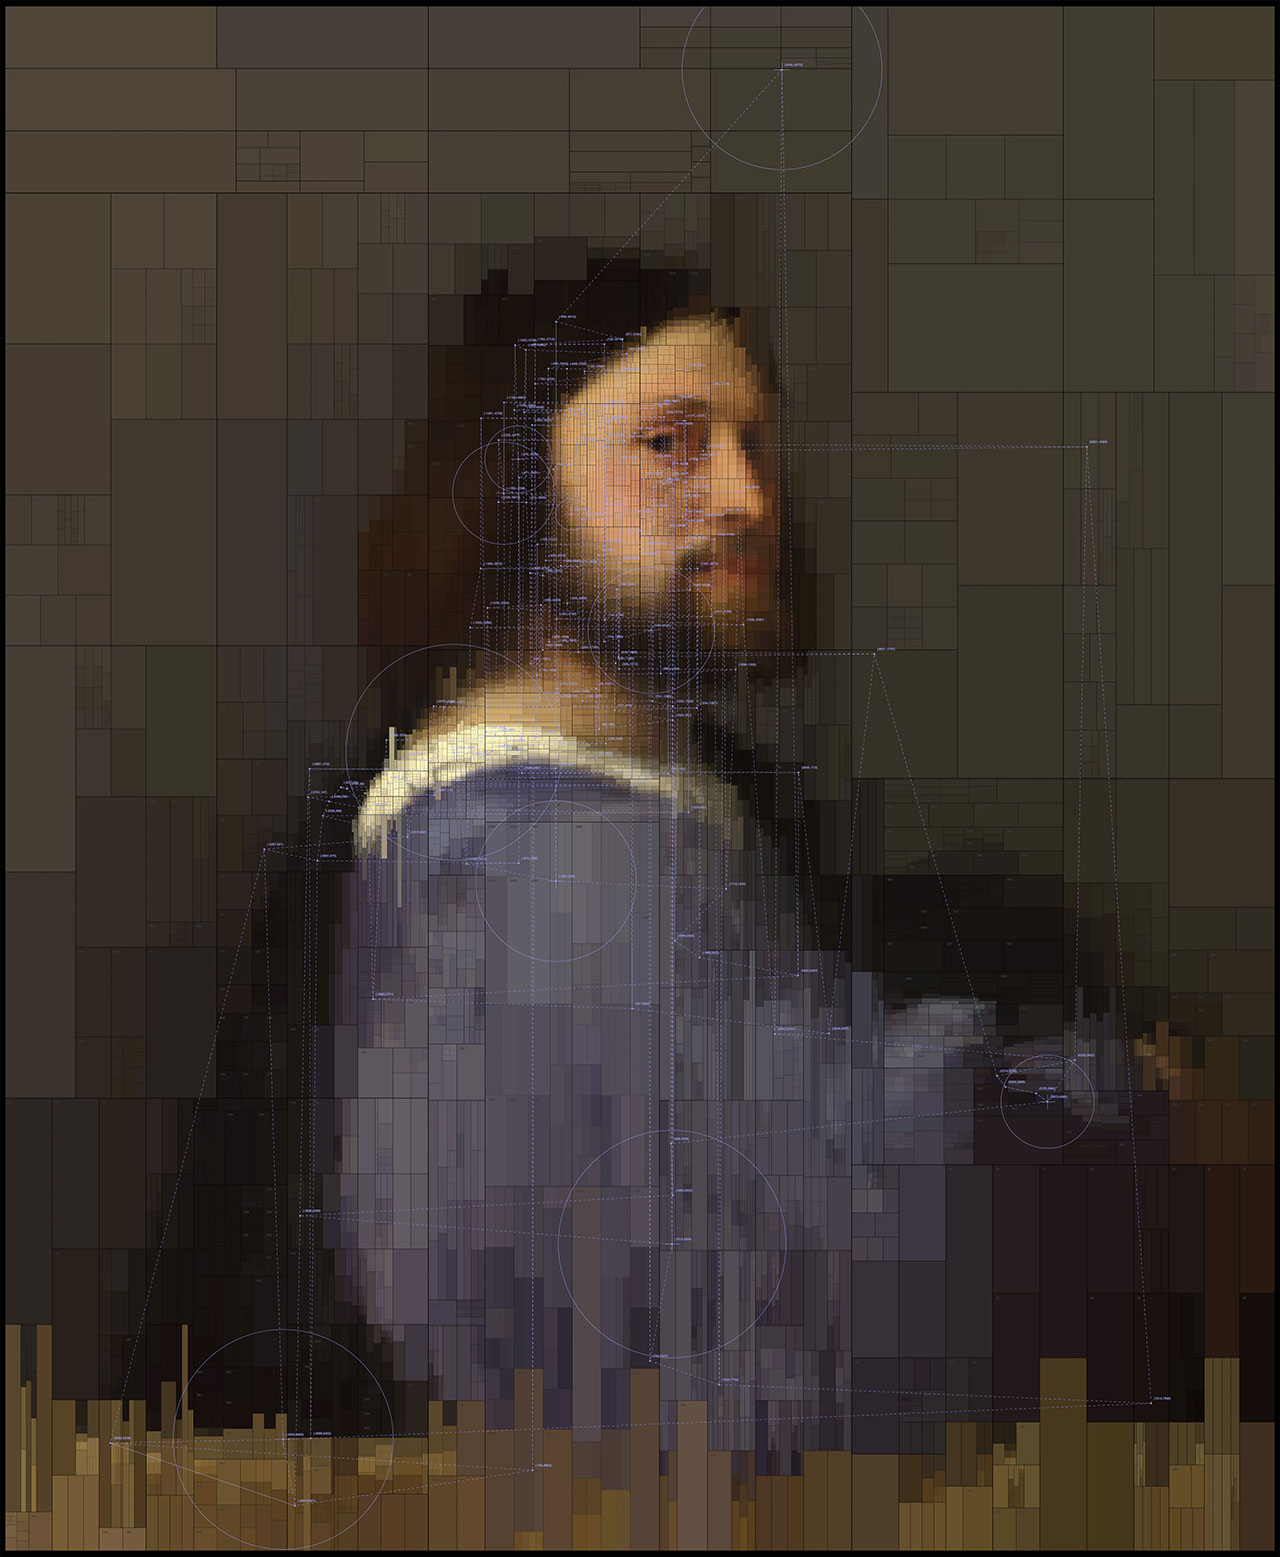 A Man with a Quilted Sleeve, from Portraits series by Dimitris Ladopoulos (Original painting by Titian, 1510).